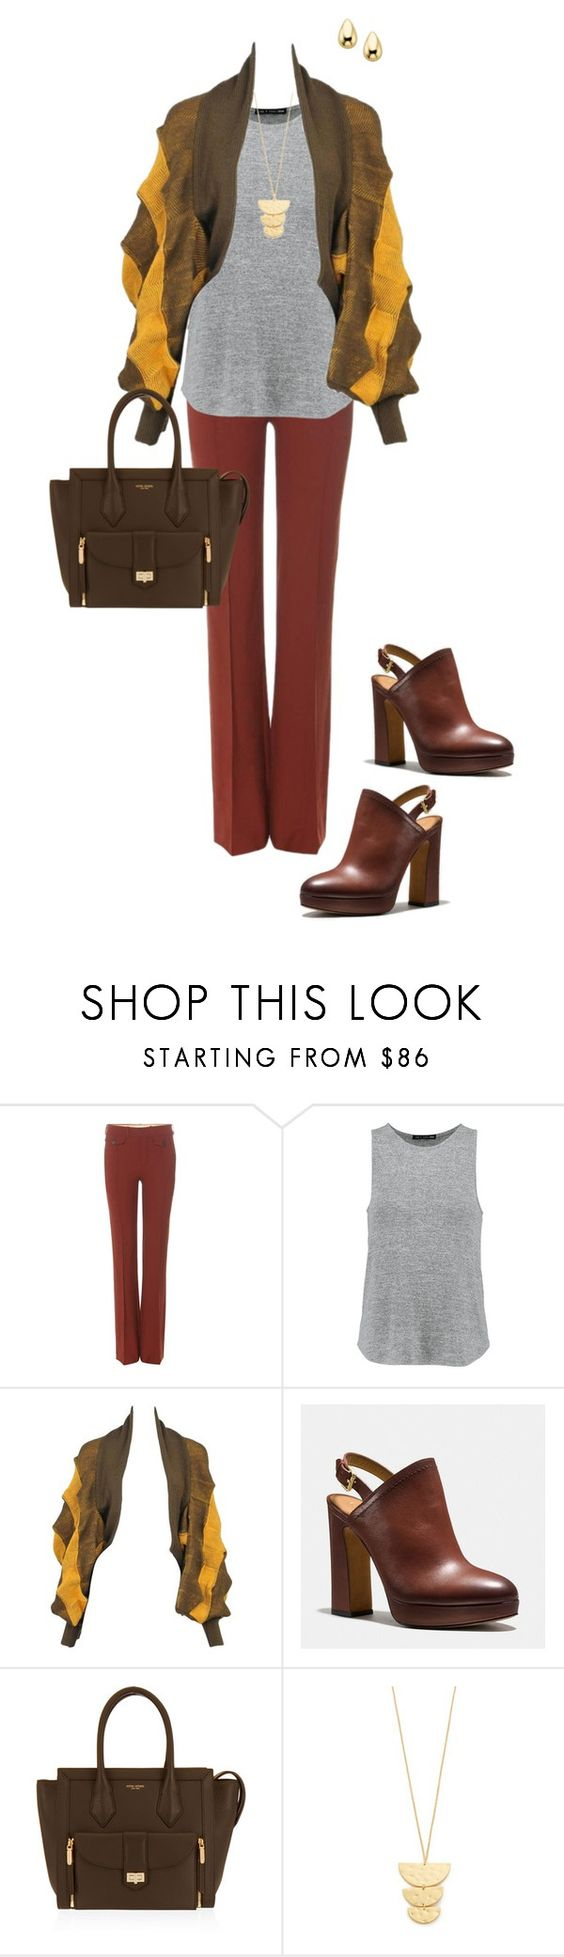 """Untitled #282"" by ccoss on Polyvore featuring Chloé, rag & bone, Issey Miyake, Coach, Henri Bendel and Gorjana"